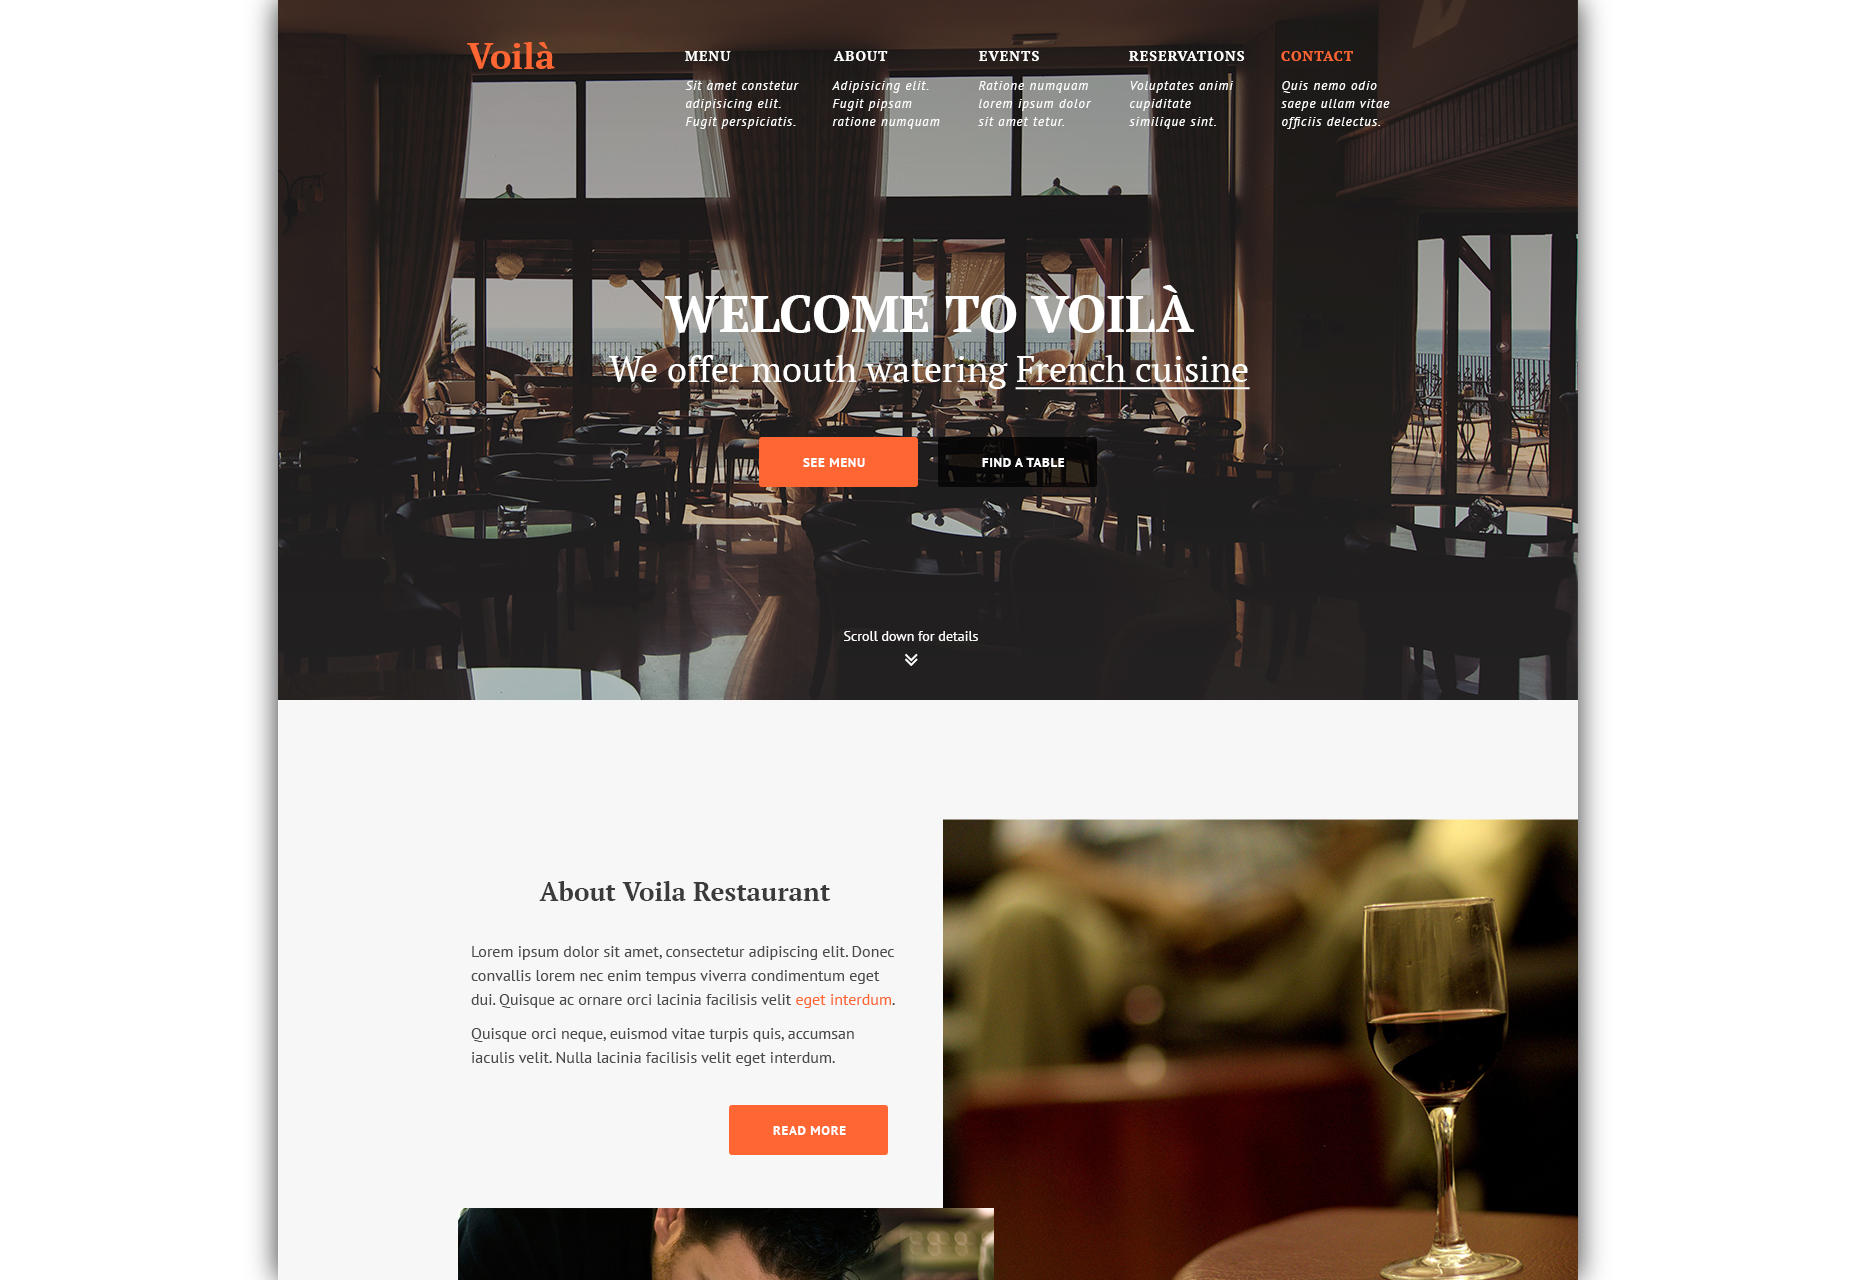 voila-restaurant-website-psd-template